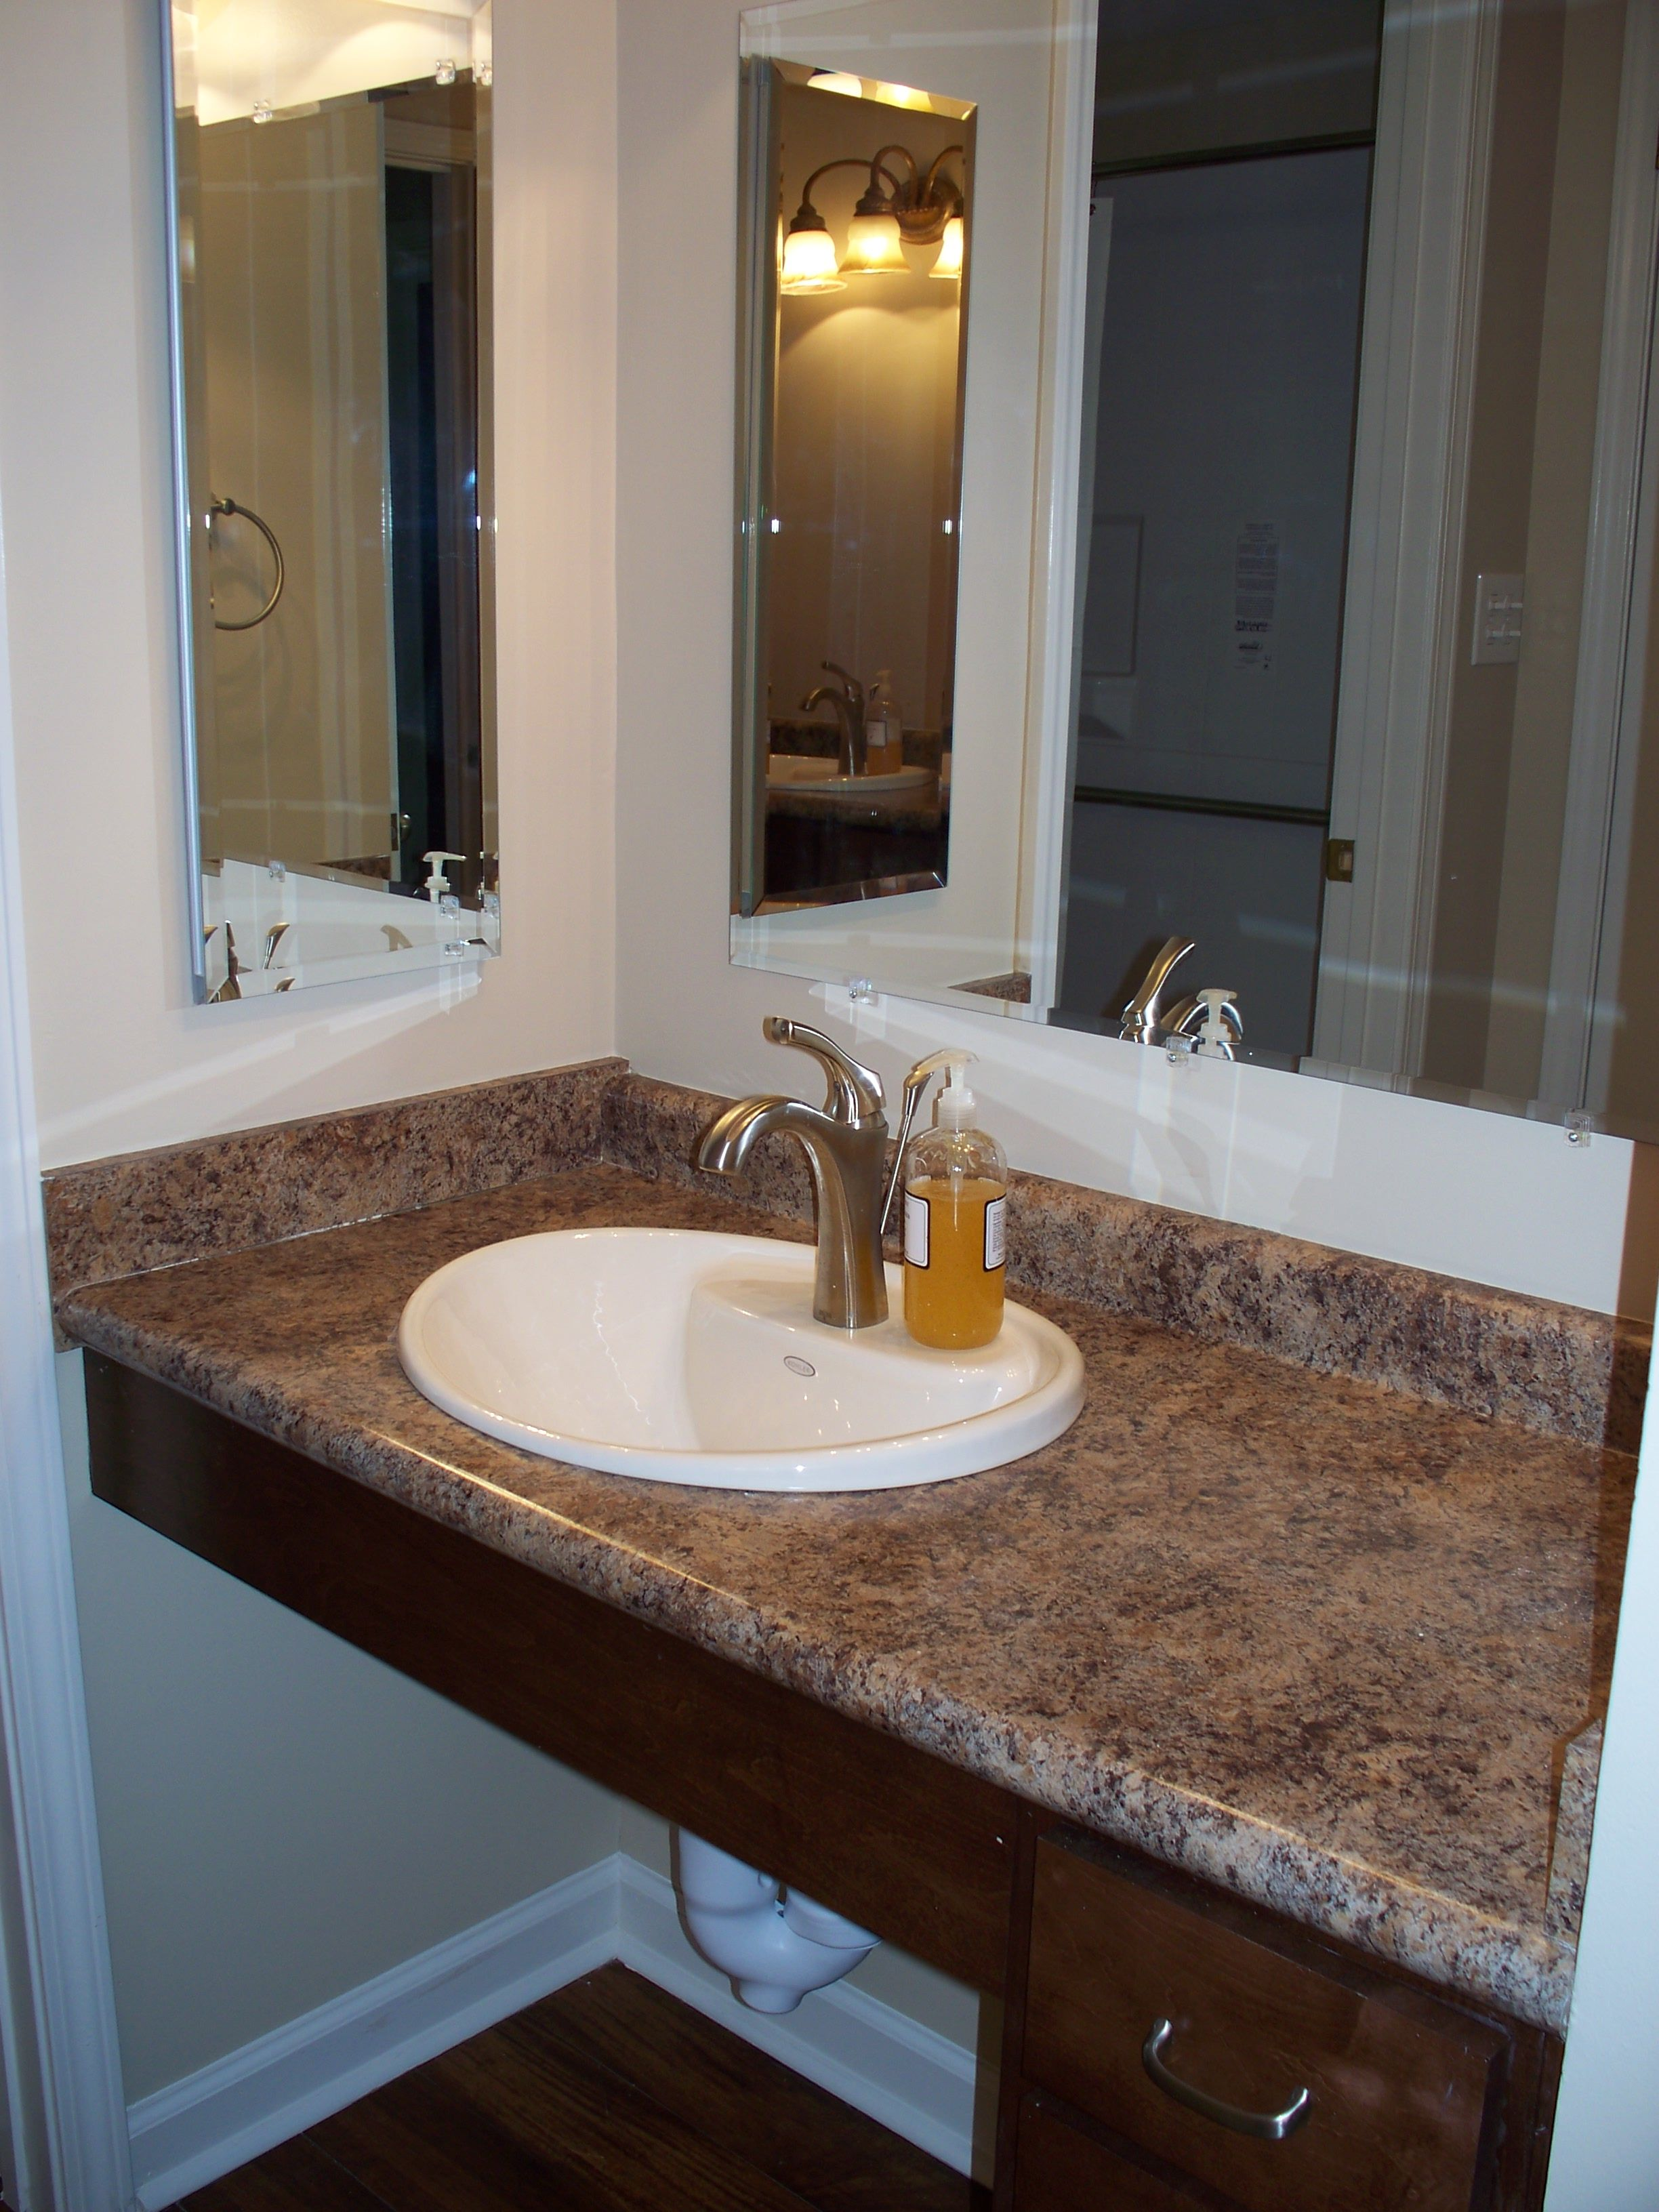 Gallery For Photographers Example of a wheelchair accessible vanity Note the lever handle on the faucet and the